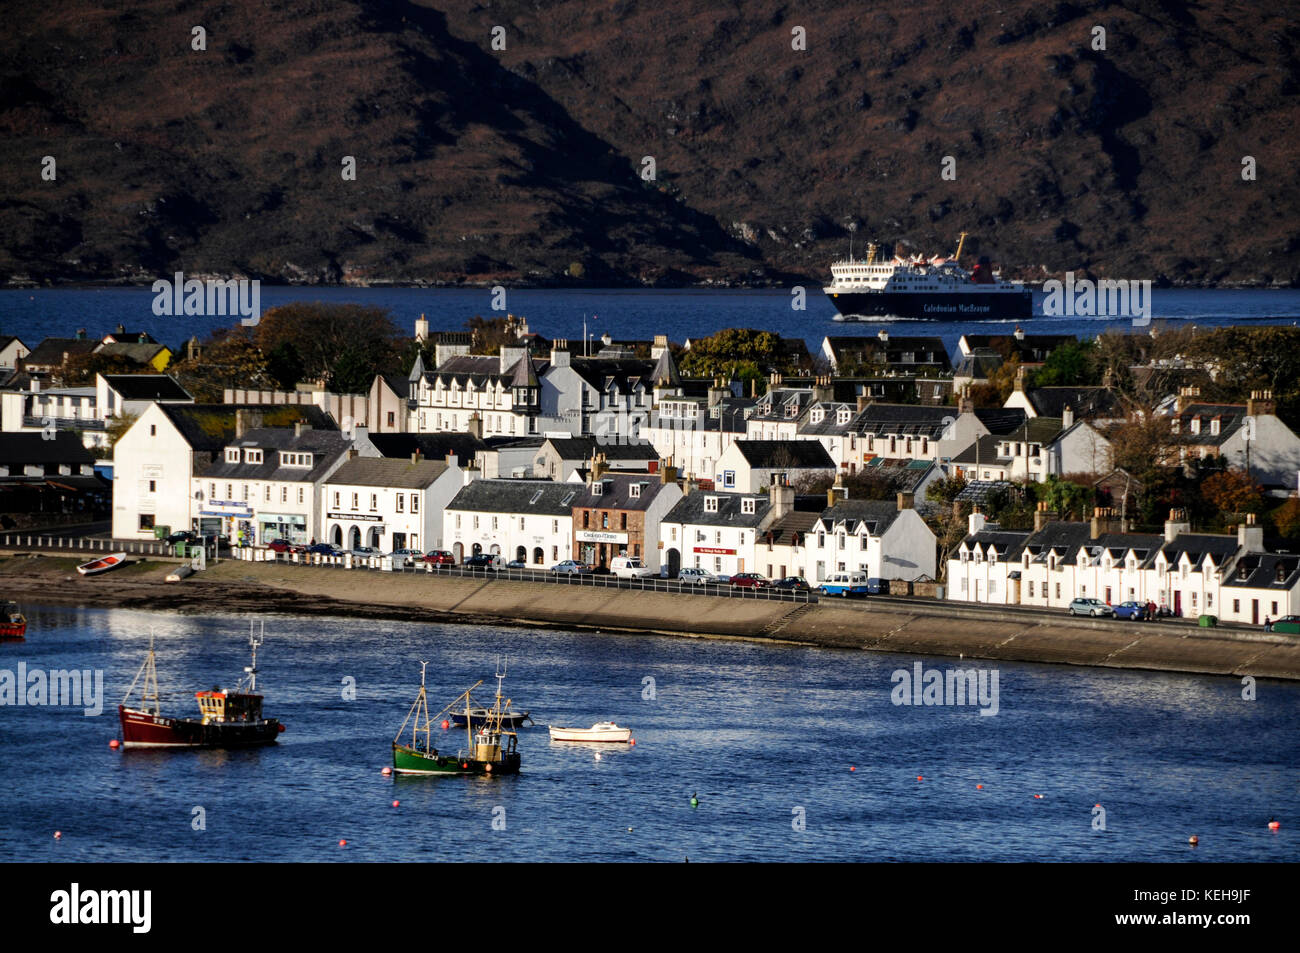 The daily Caledonian MacBrayne car ferry service sails into Ullapool on Loch Broom in northwest Scotland from Stornoway - Stock Image